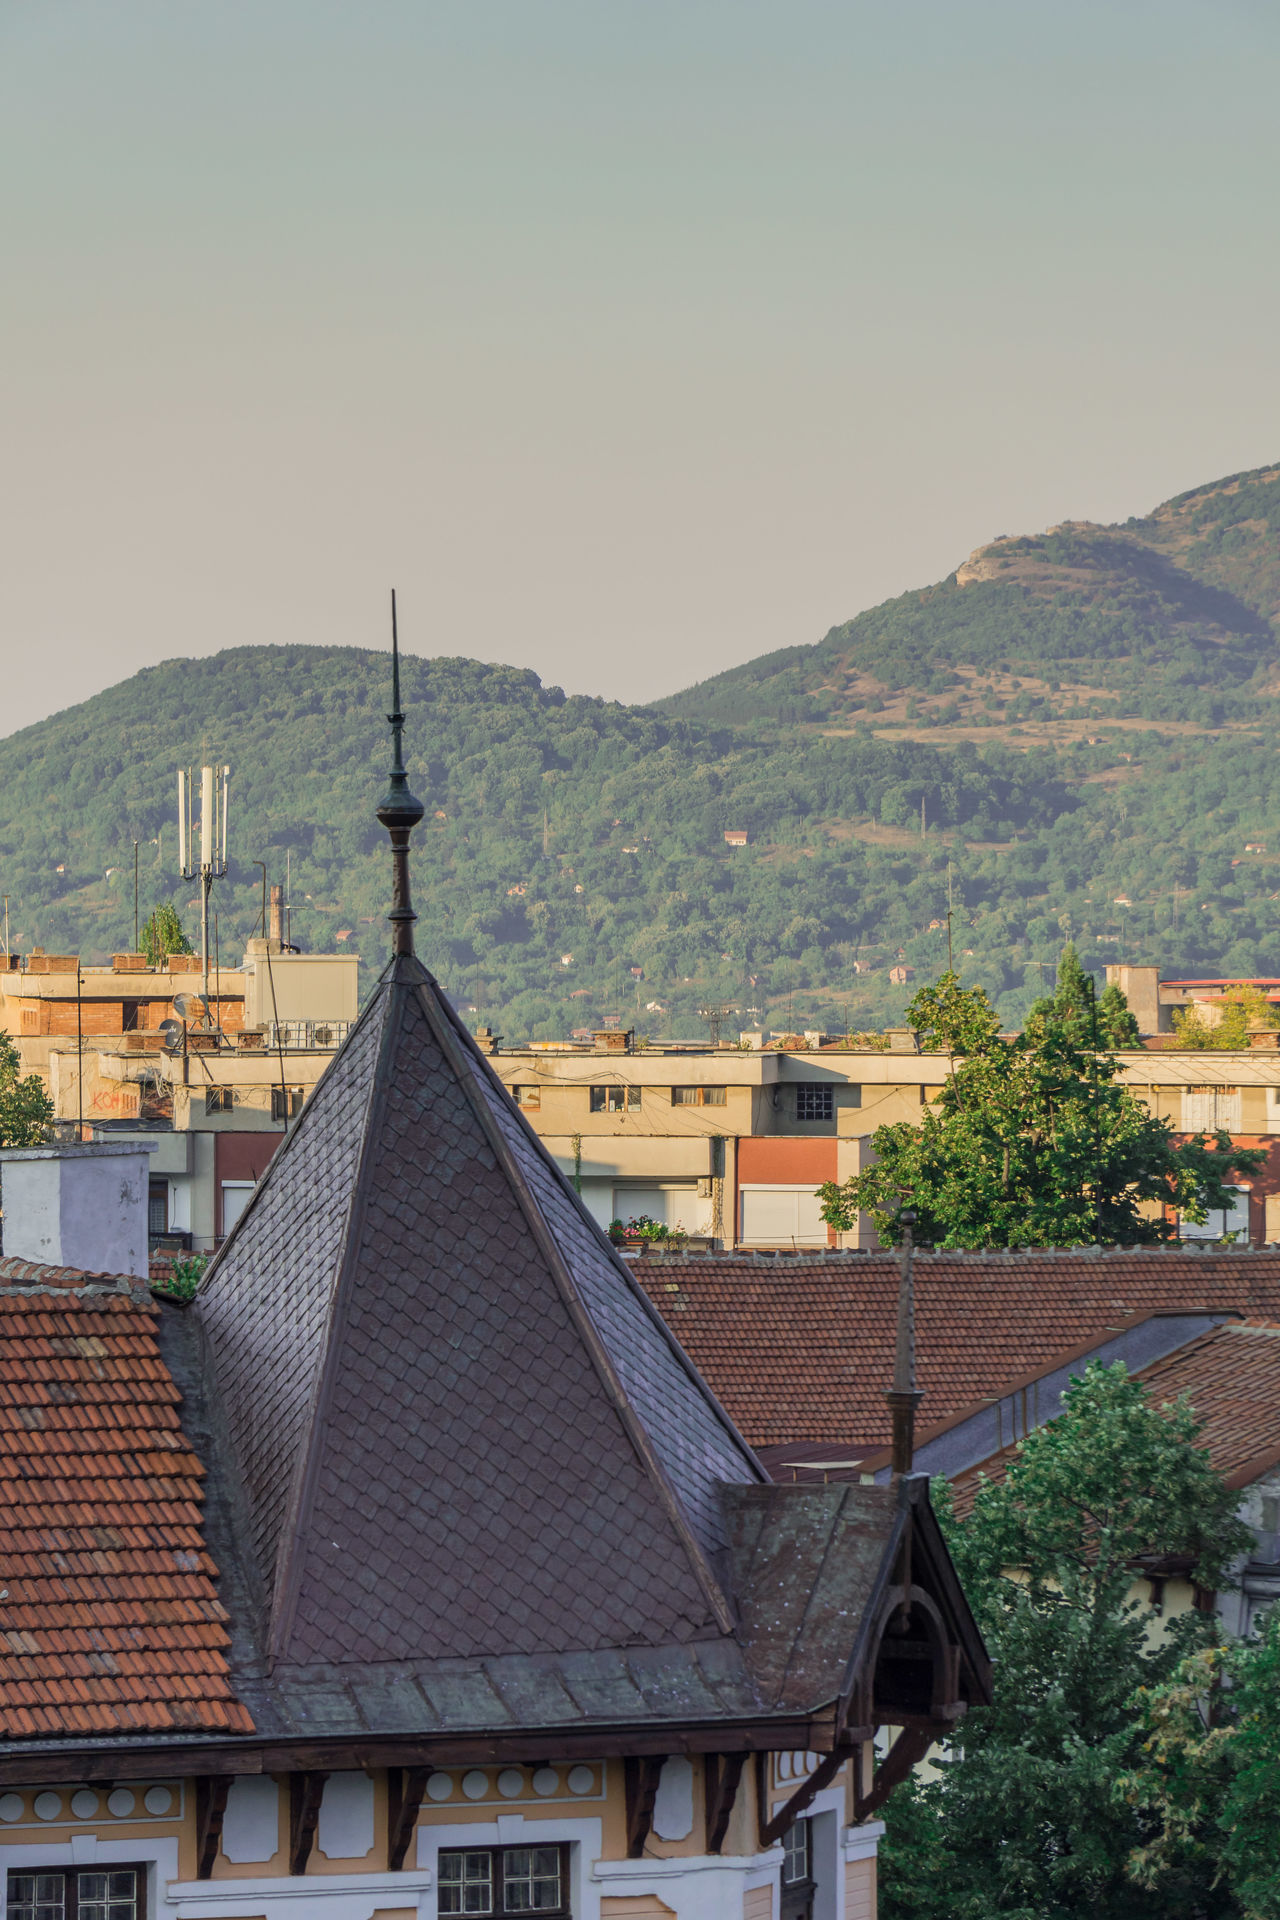 Sky Architecture Vratsa Nature Outdoors Rooftop Rooftops